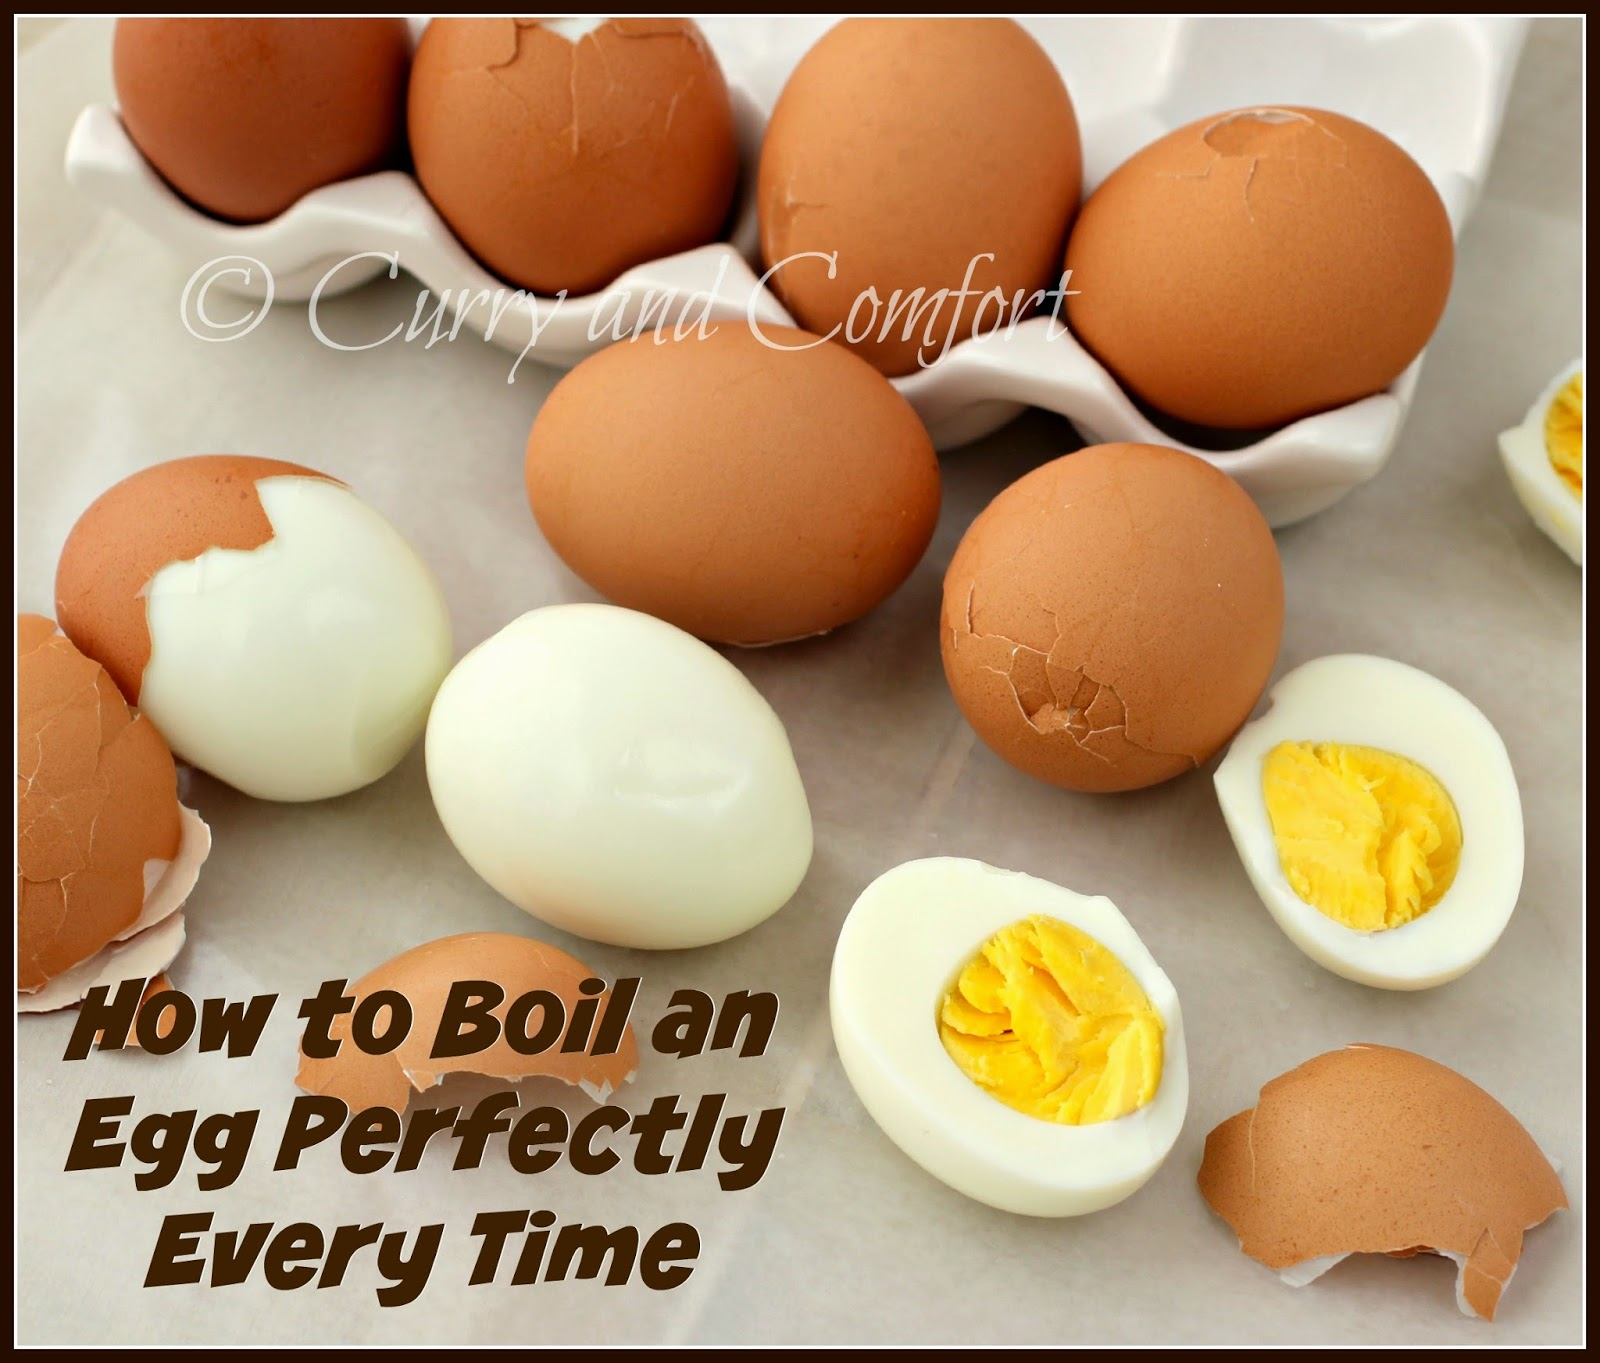 And comfort tuesday tips how to boil an egg perfectly every time